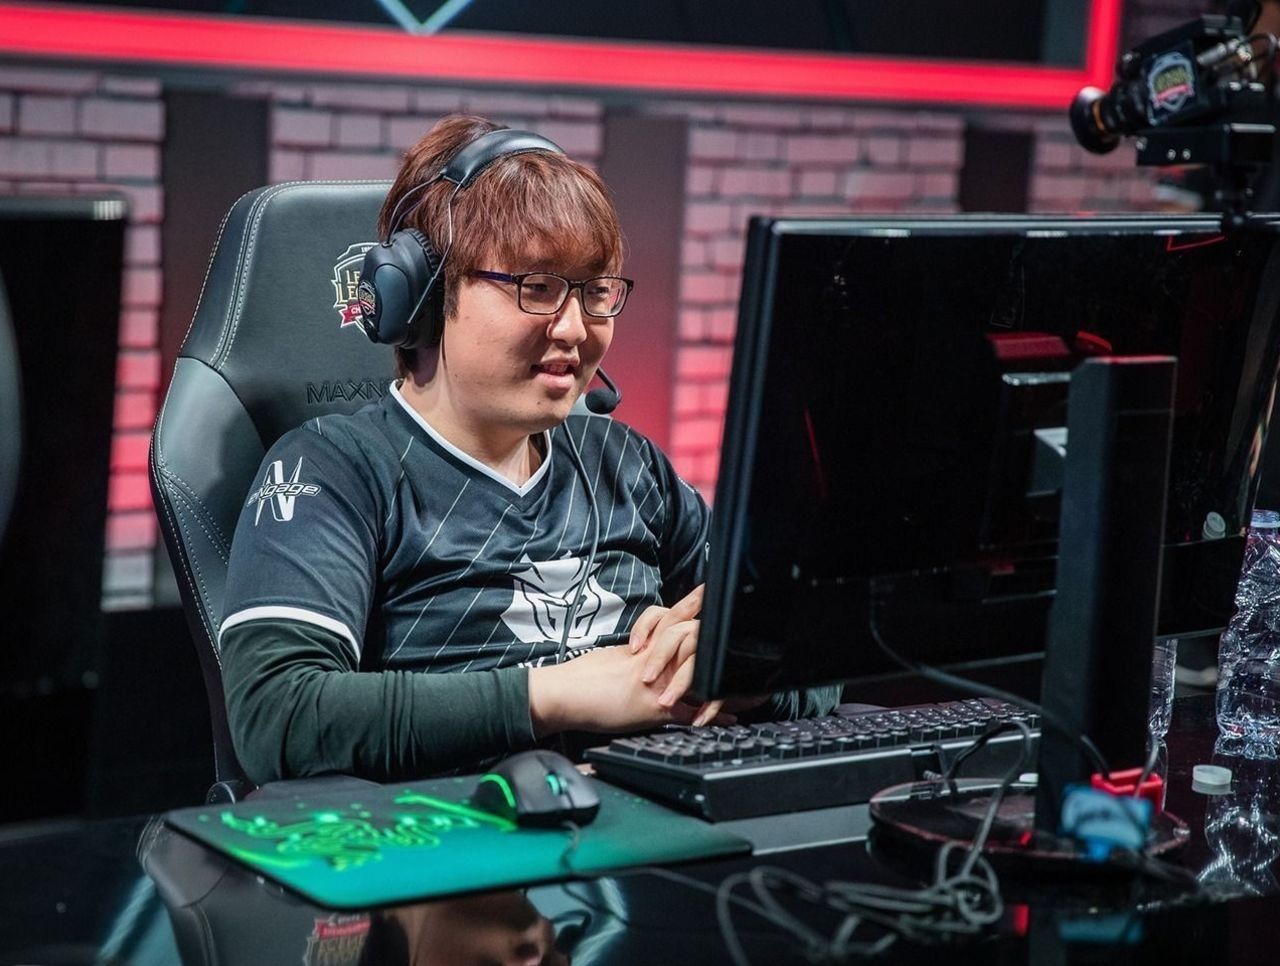 theScore esports Daily (April 8): EFFECT retires from the Overwatch League, xms rejoins LDLC while Trick signs to Schalke 04 Esports